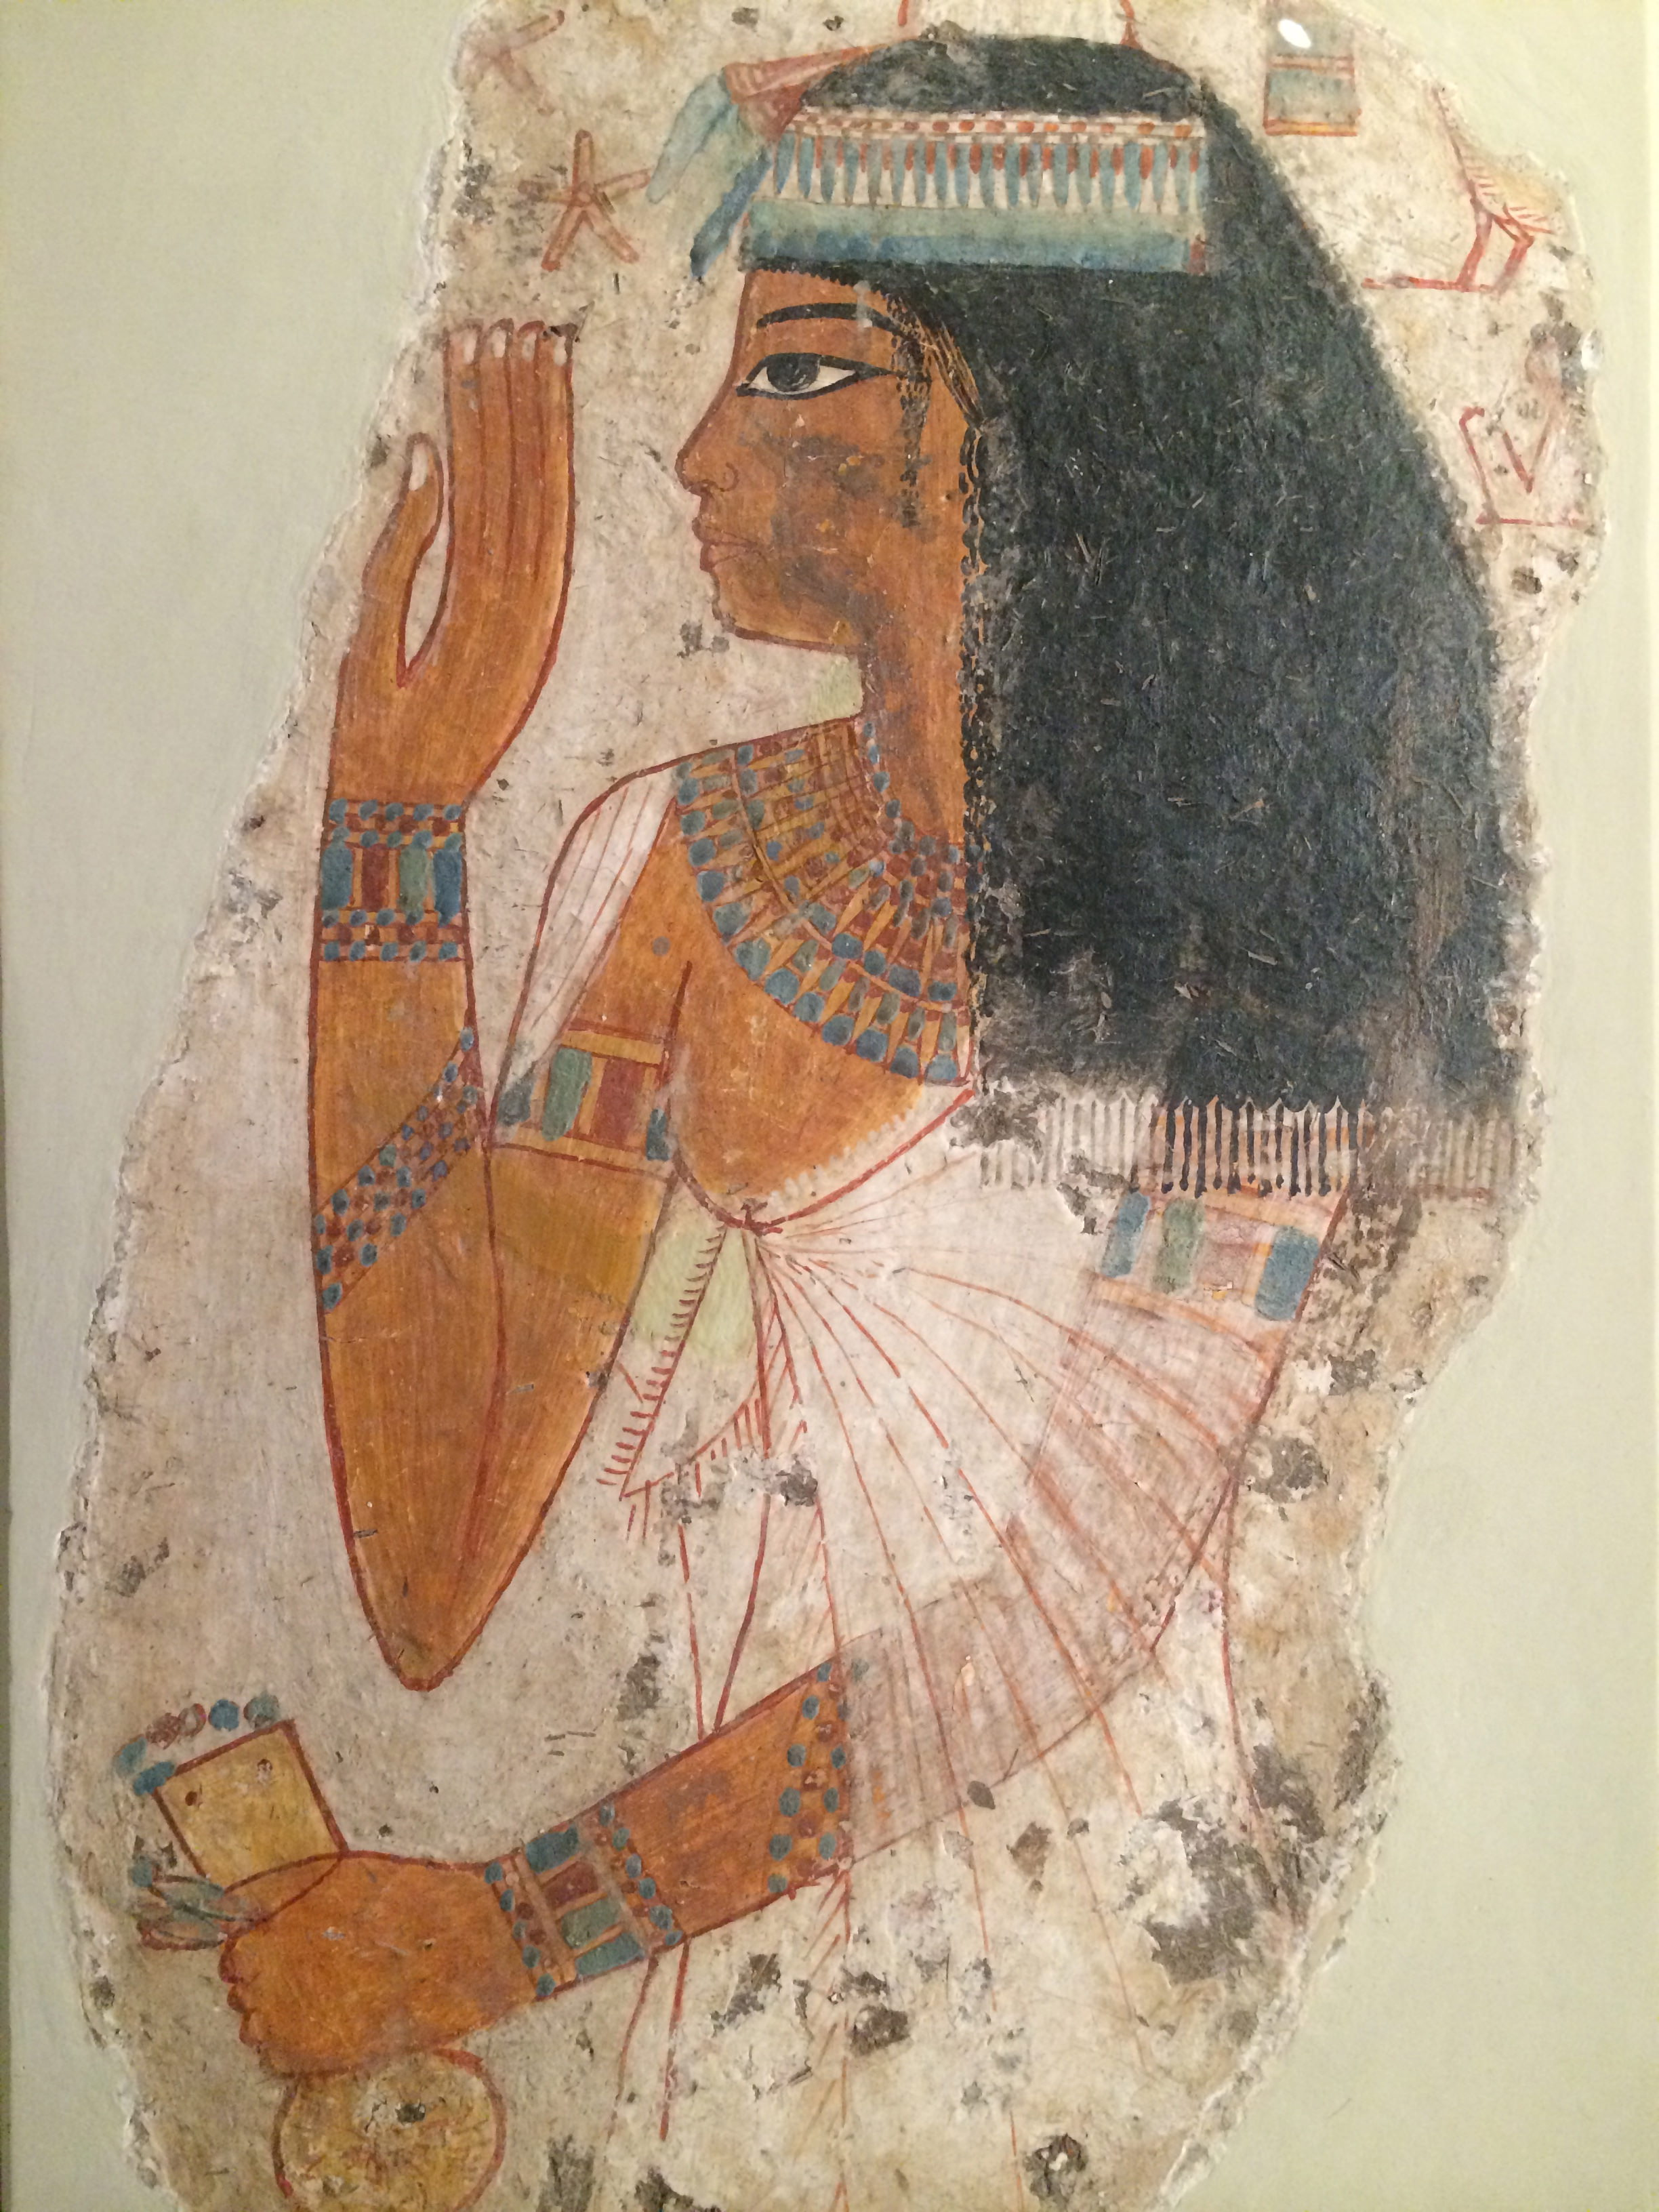 Lady tjepu illustration ancient history encyclopedia for Egyptian fresco mural painting